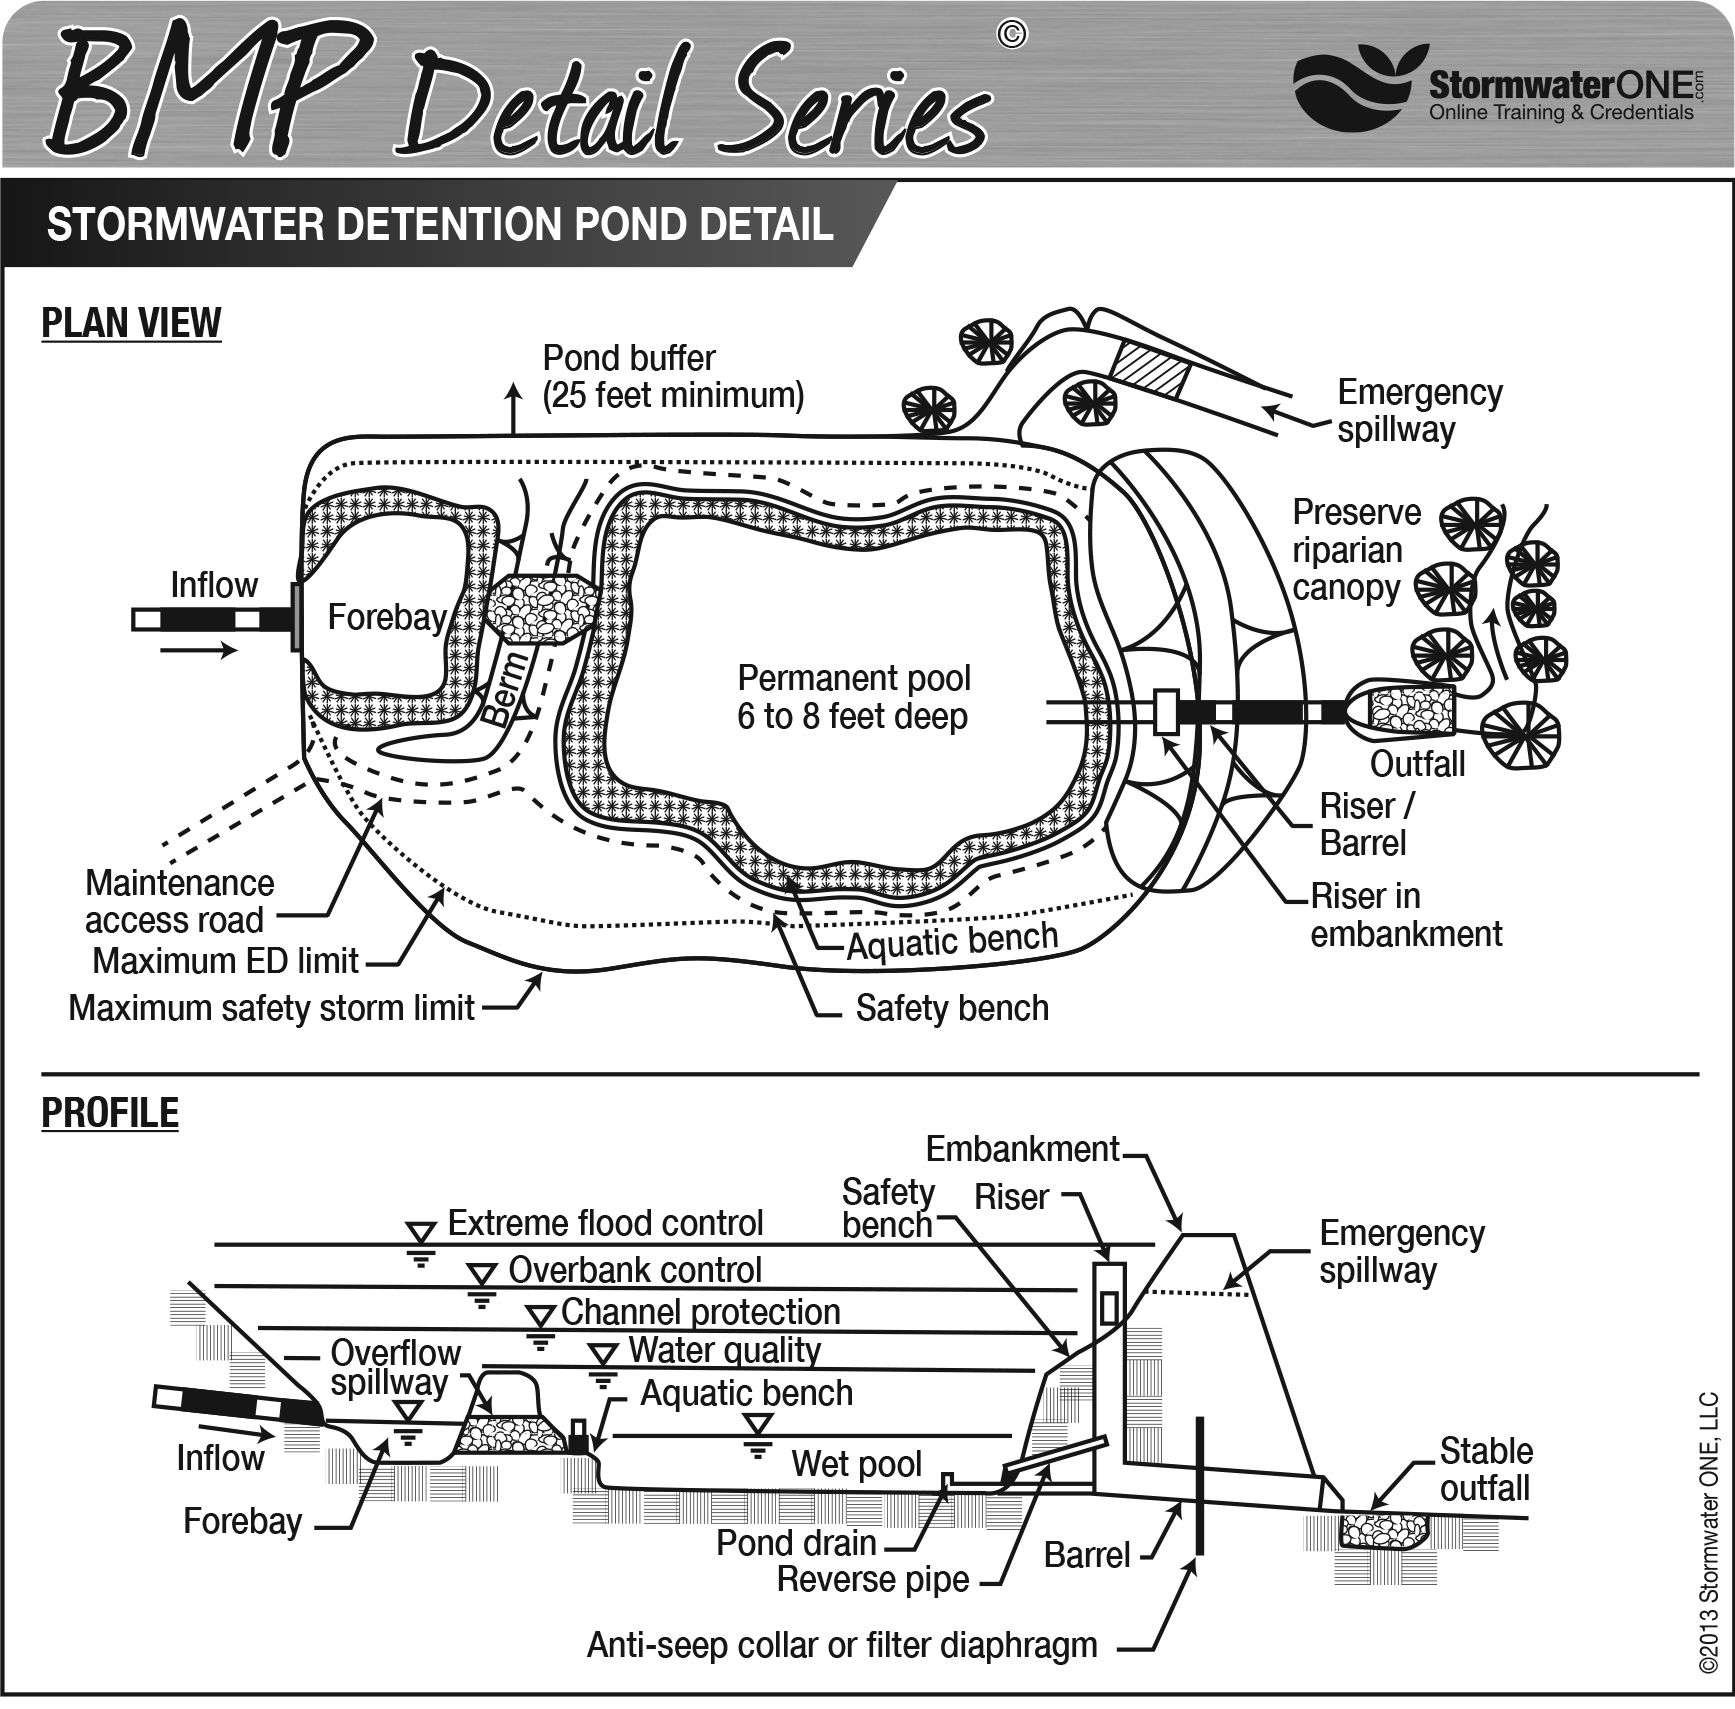 Stormwater detention pond bmp mania pinterest for Design of stormwater detention ponds